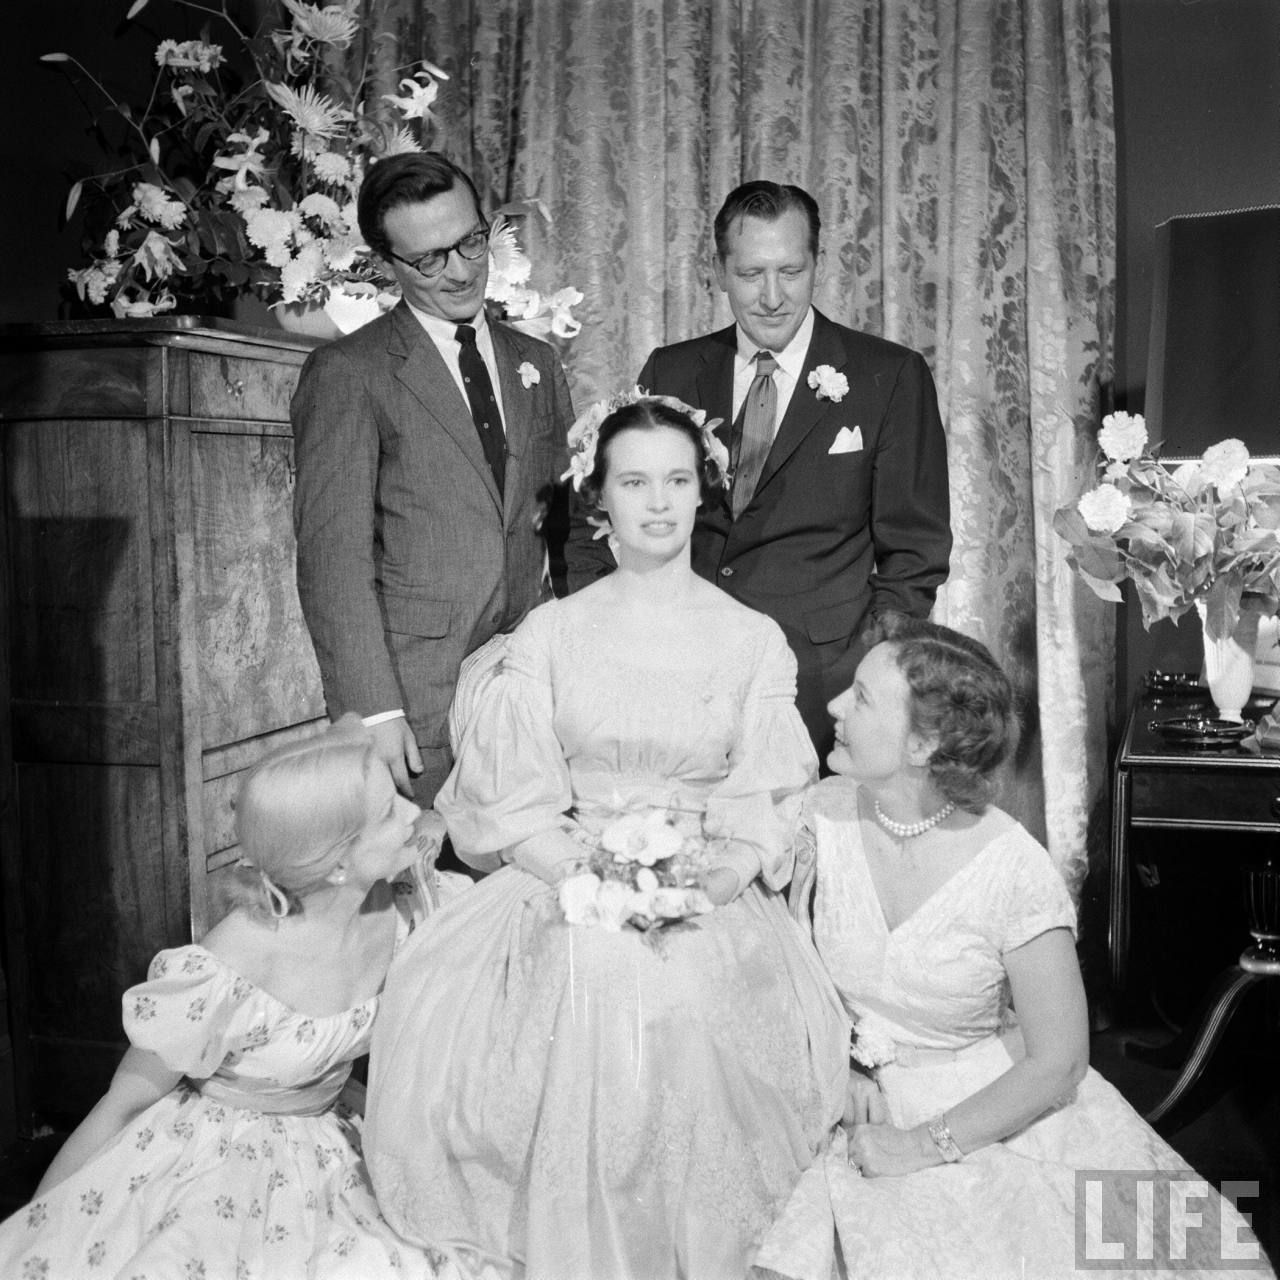 Gloria Vanderbilt 1956 Wedding Celebrity Wedding Photos Vintage Wedding Photos Celebrity Weddings